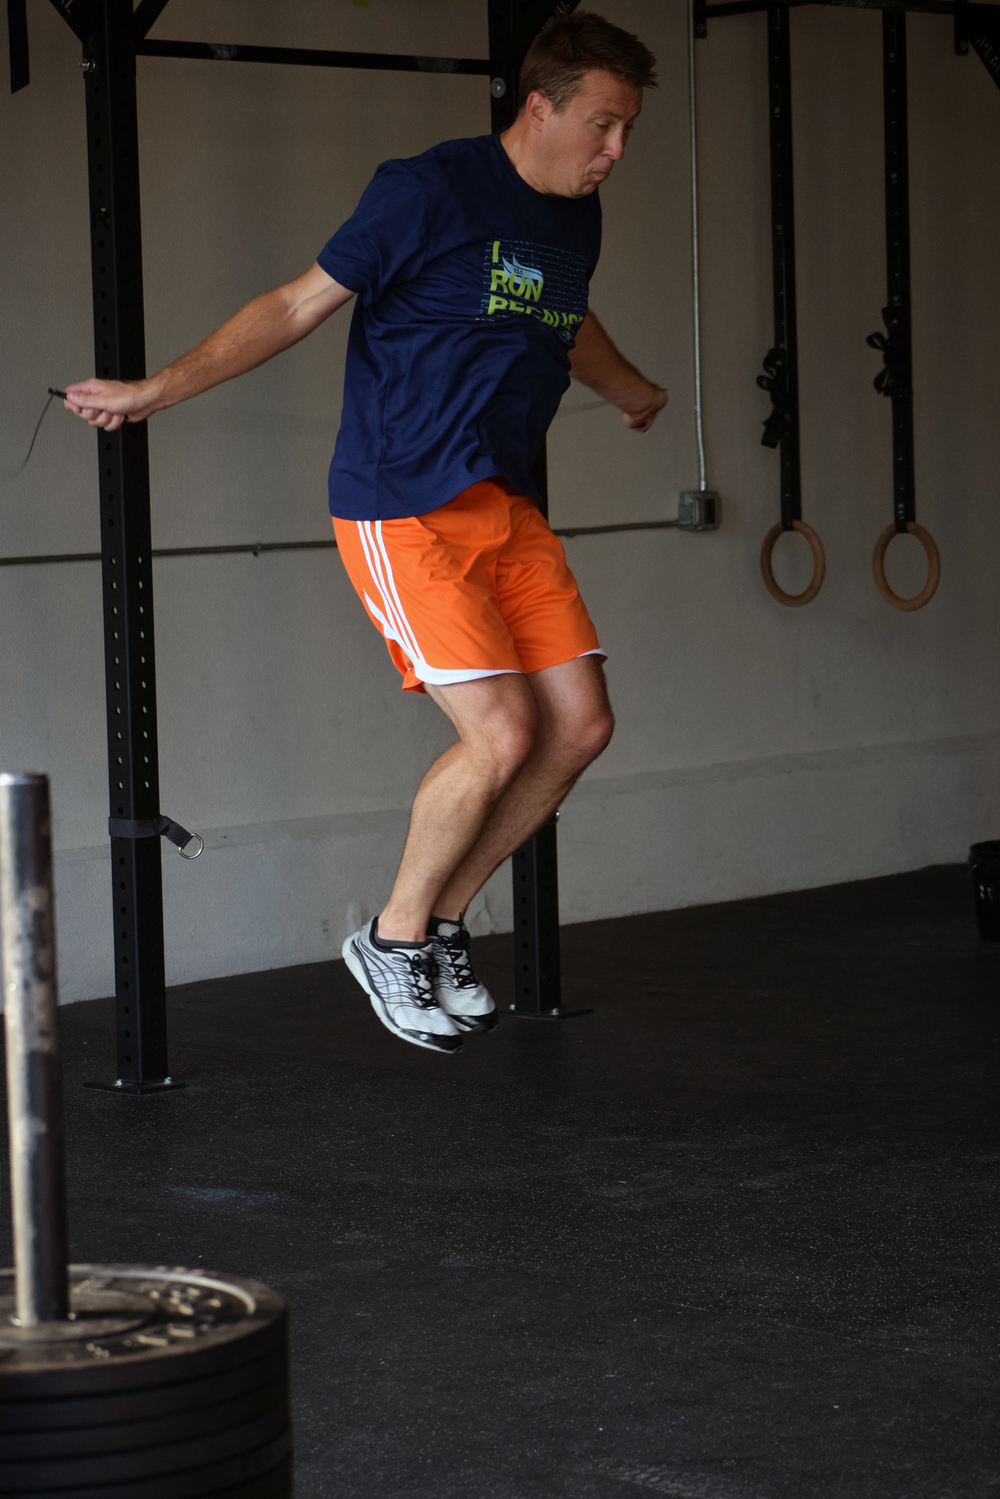 Tim working on his double unders